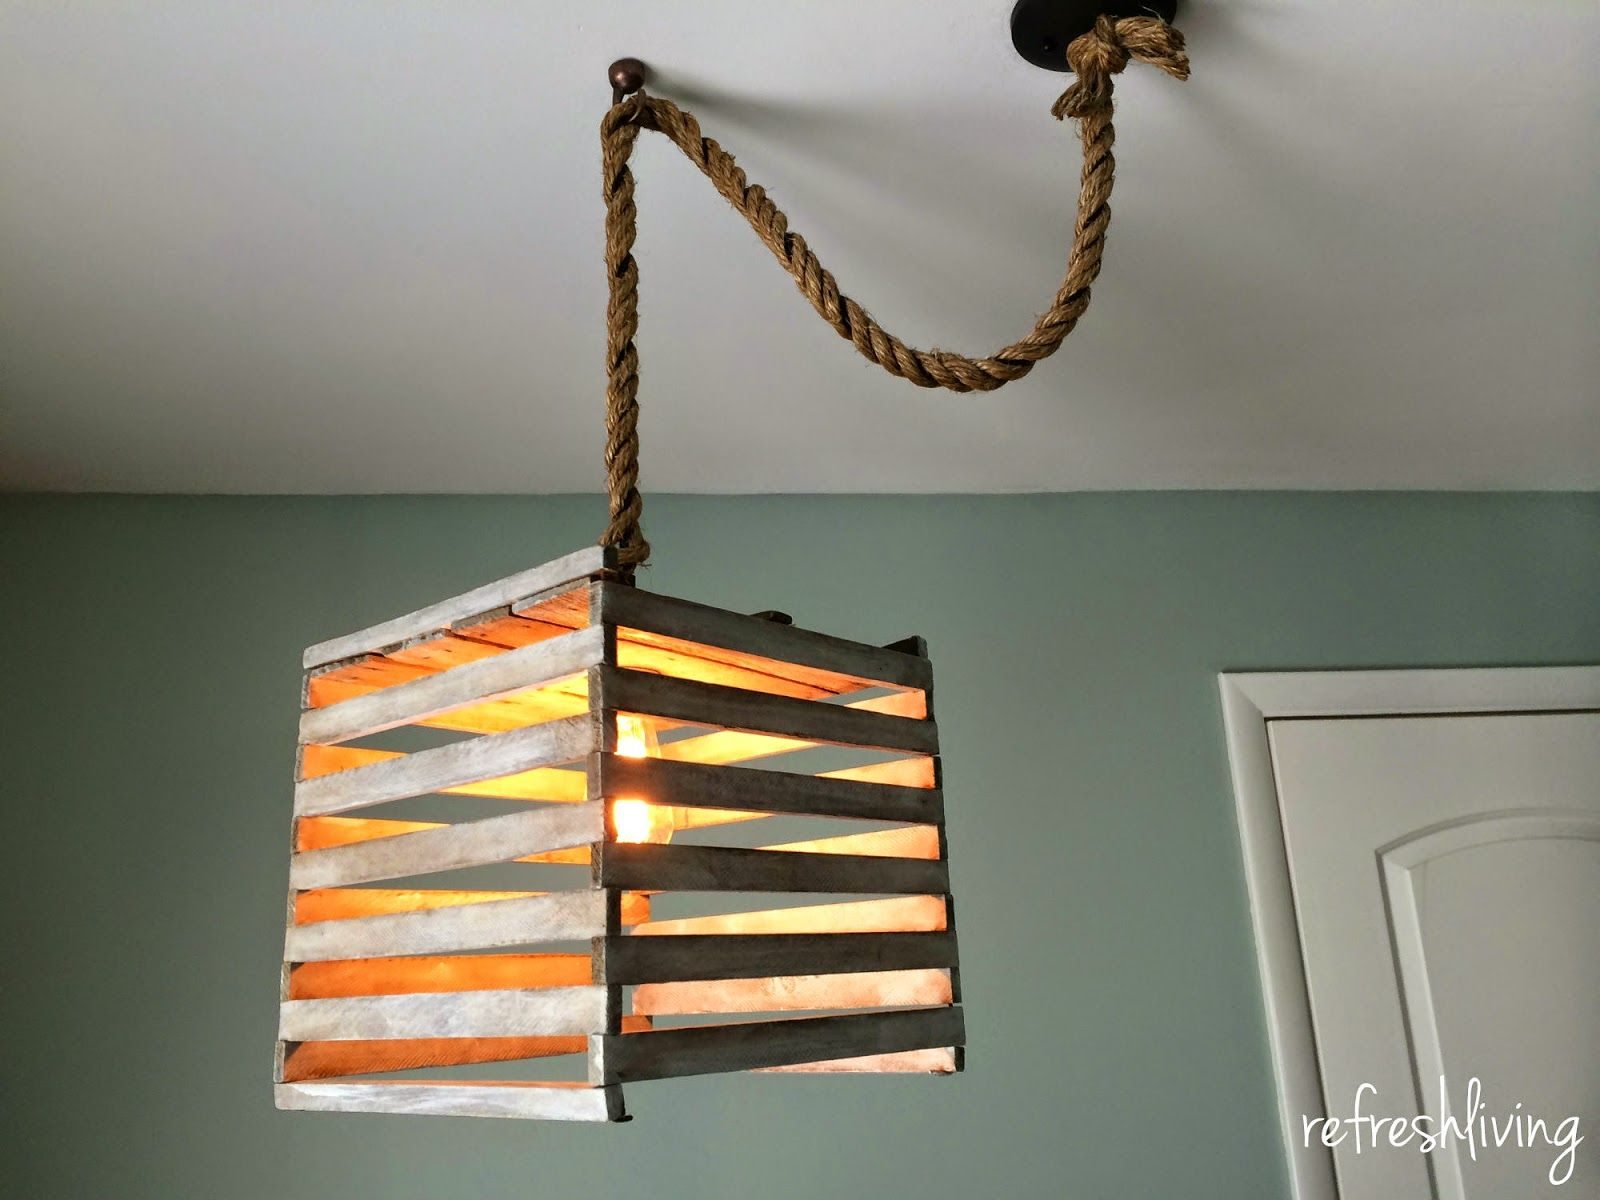 Diy Lighting Farmhouse Light Fixture From An Old Egg Crate Egg Crates